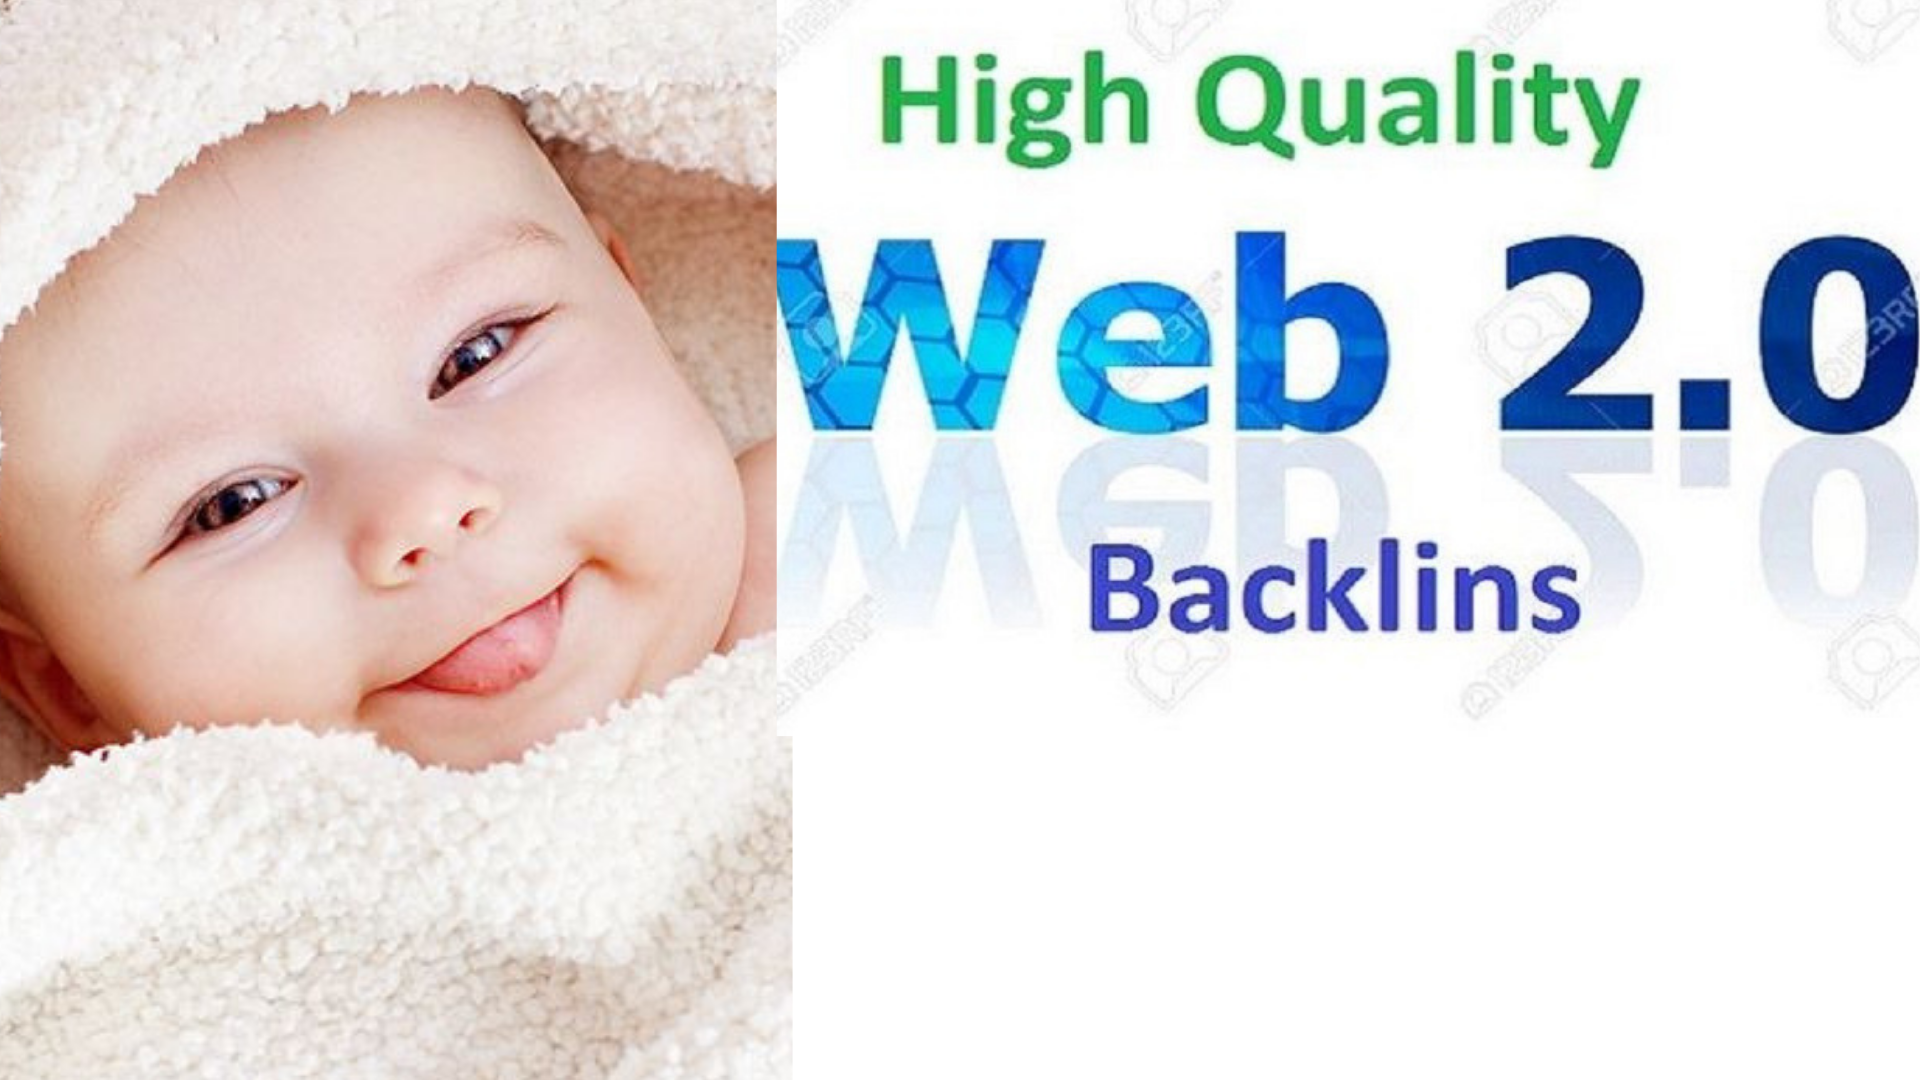 I do create 15 Super WEB 2.0 Blogs With High Domain Authority Up To 80-100